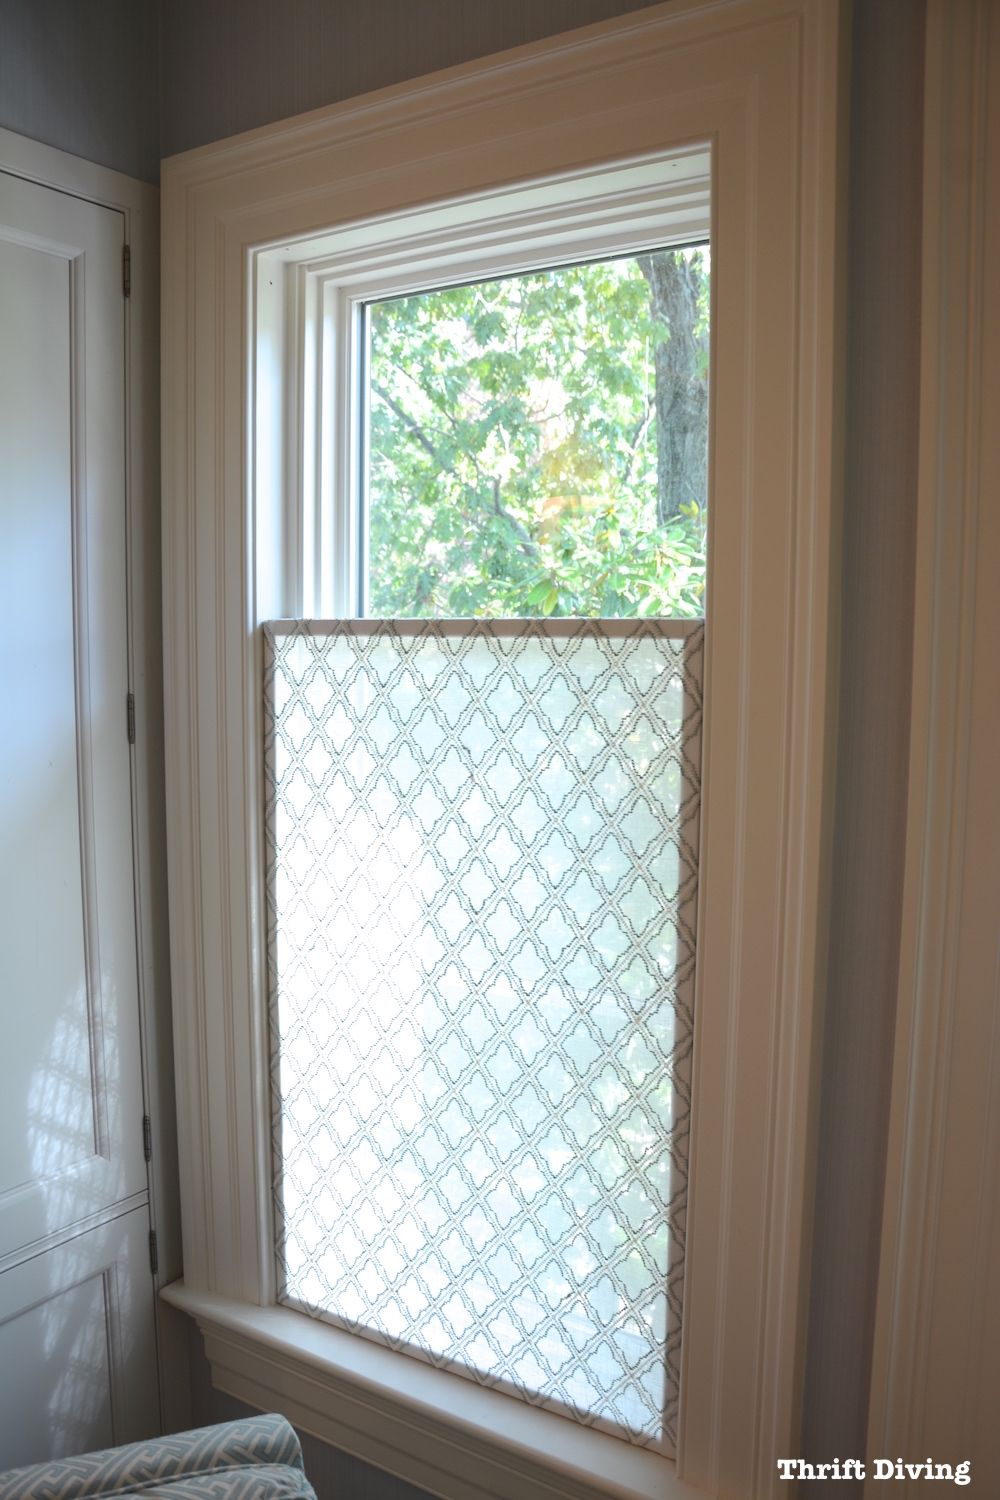 Inspirational Window Glass Treatments for Privacy